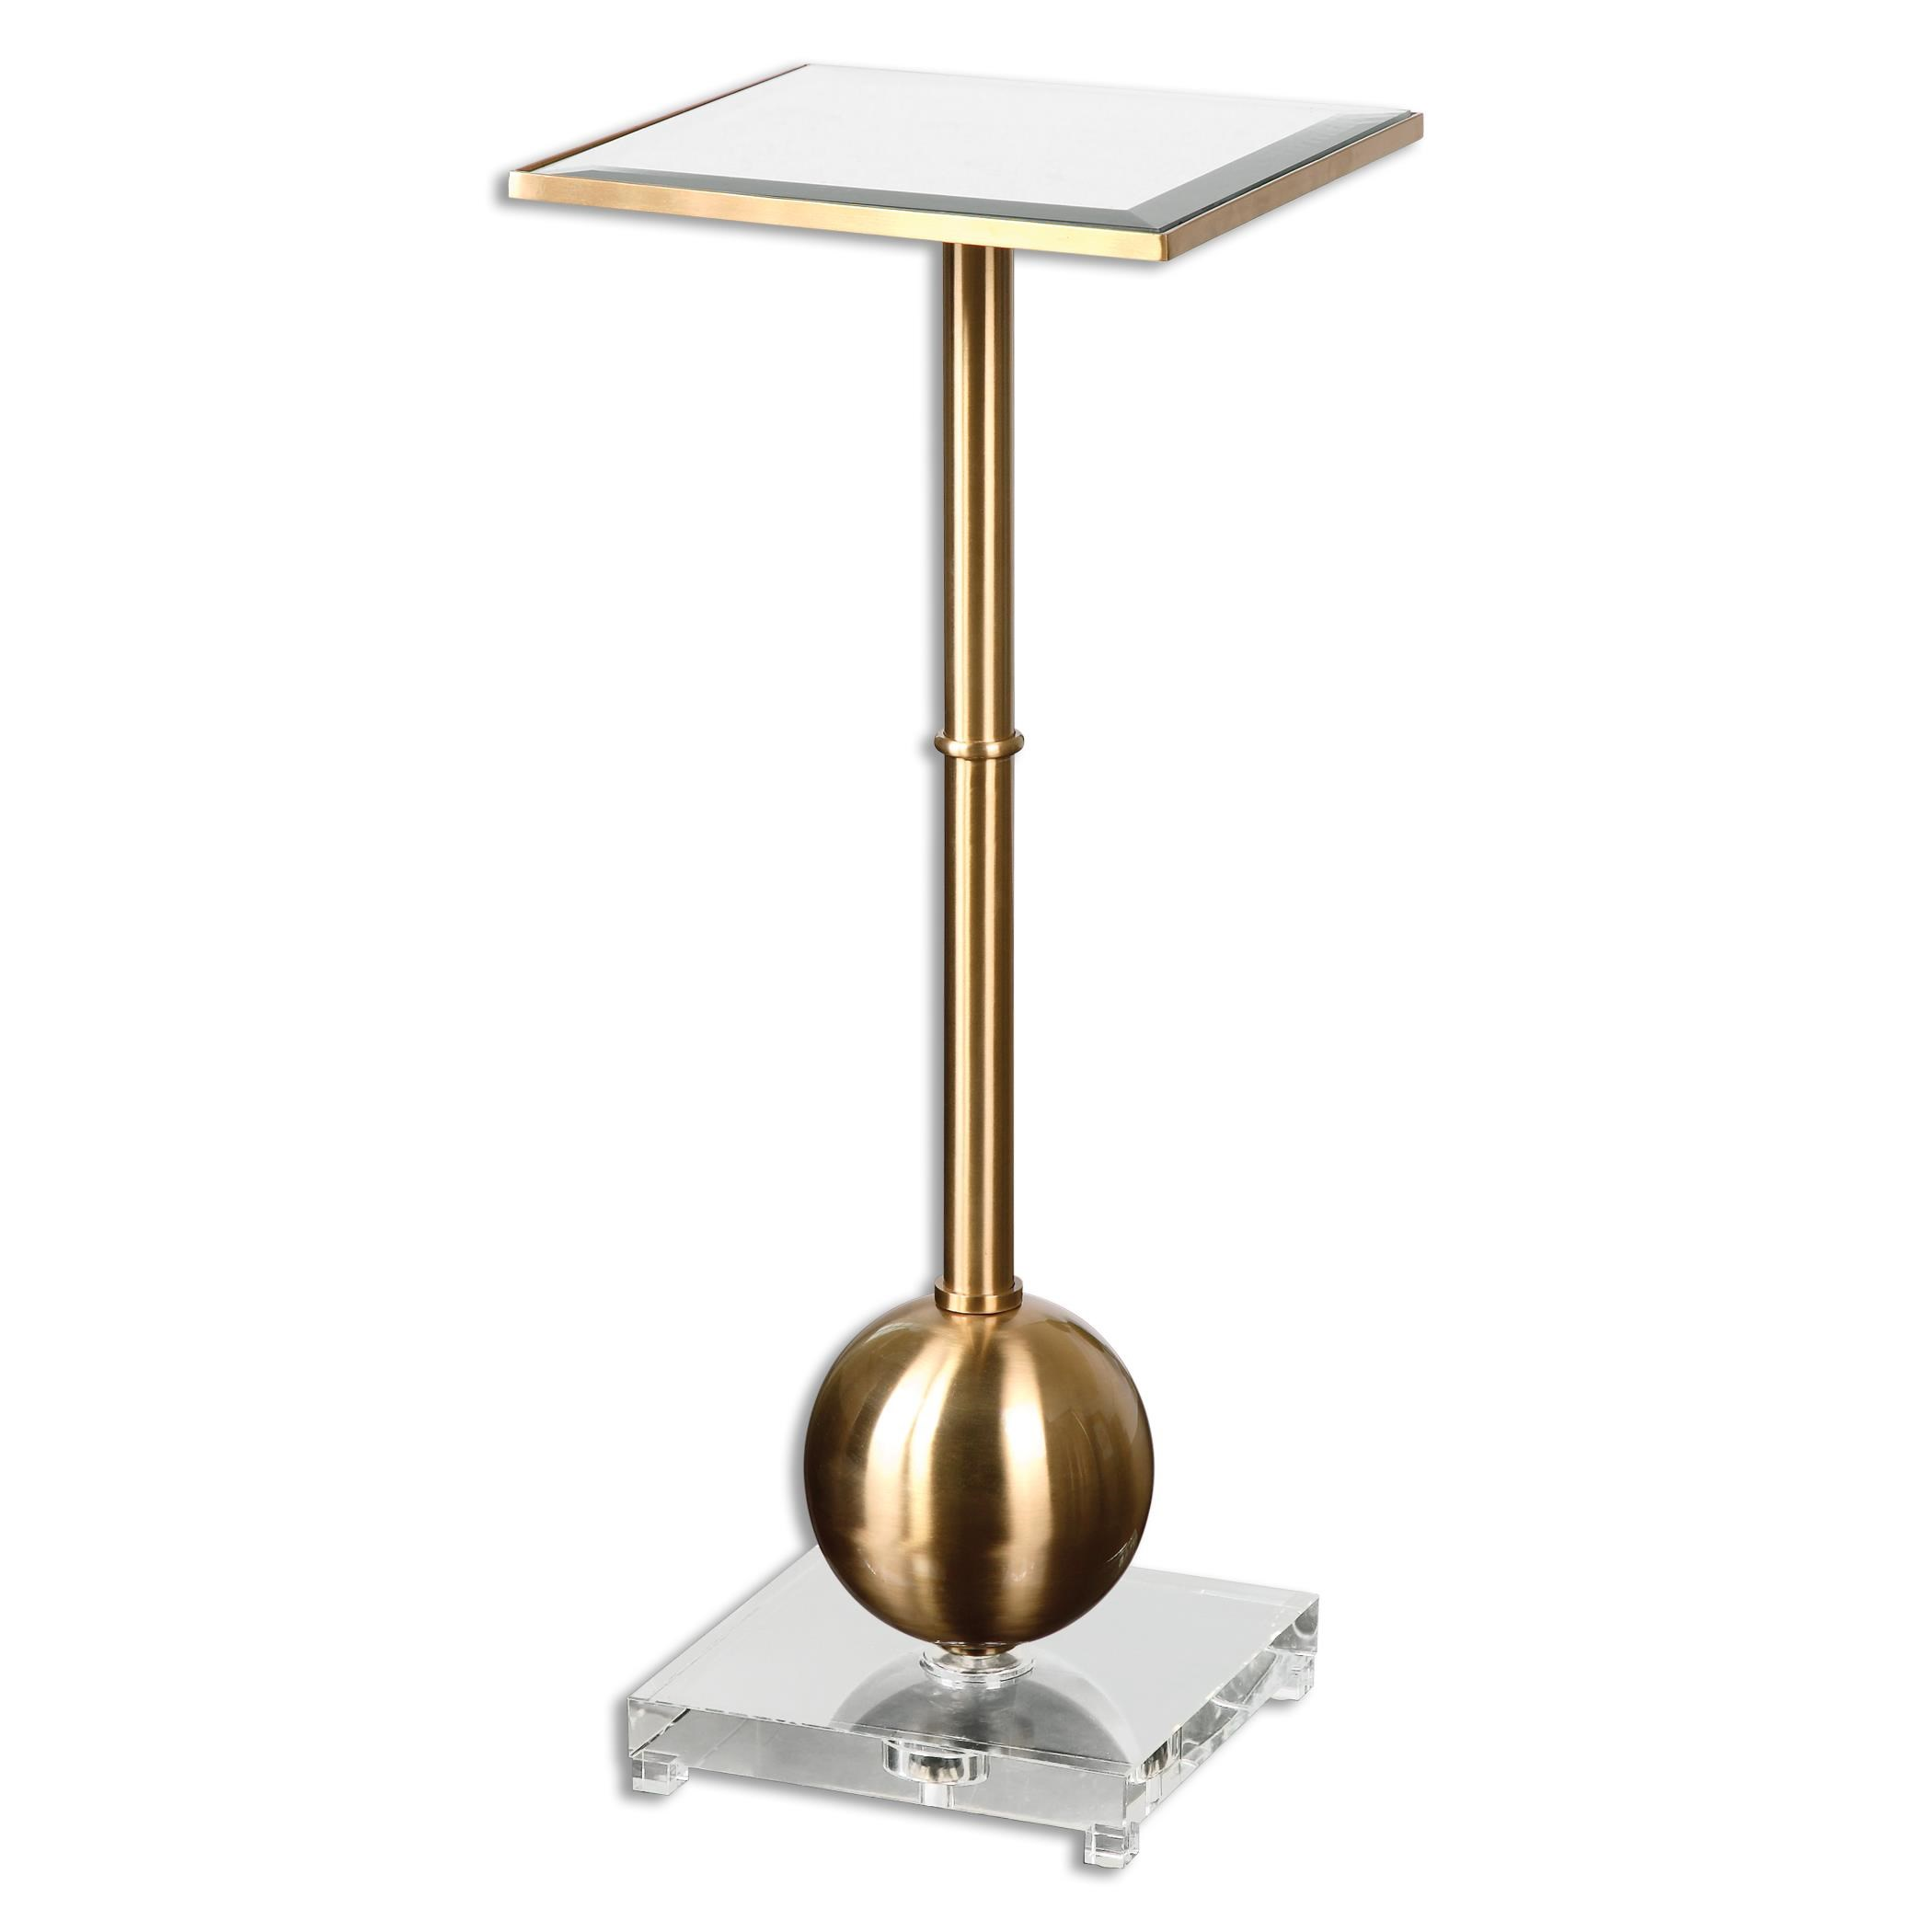 Uttermost Accent FurnitureLaton Mirrored Accent Table ...